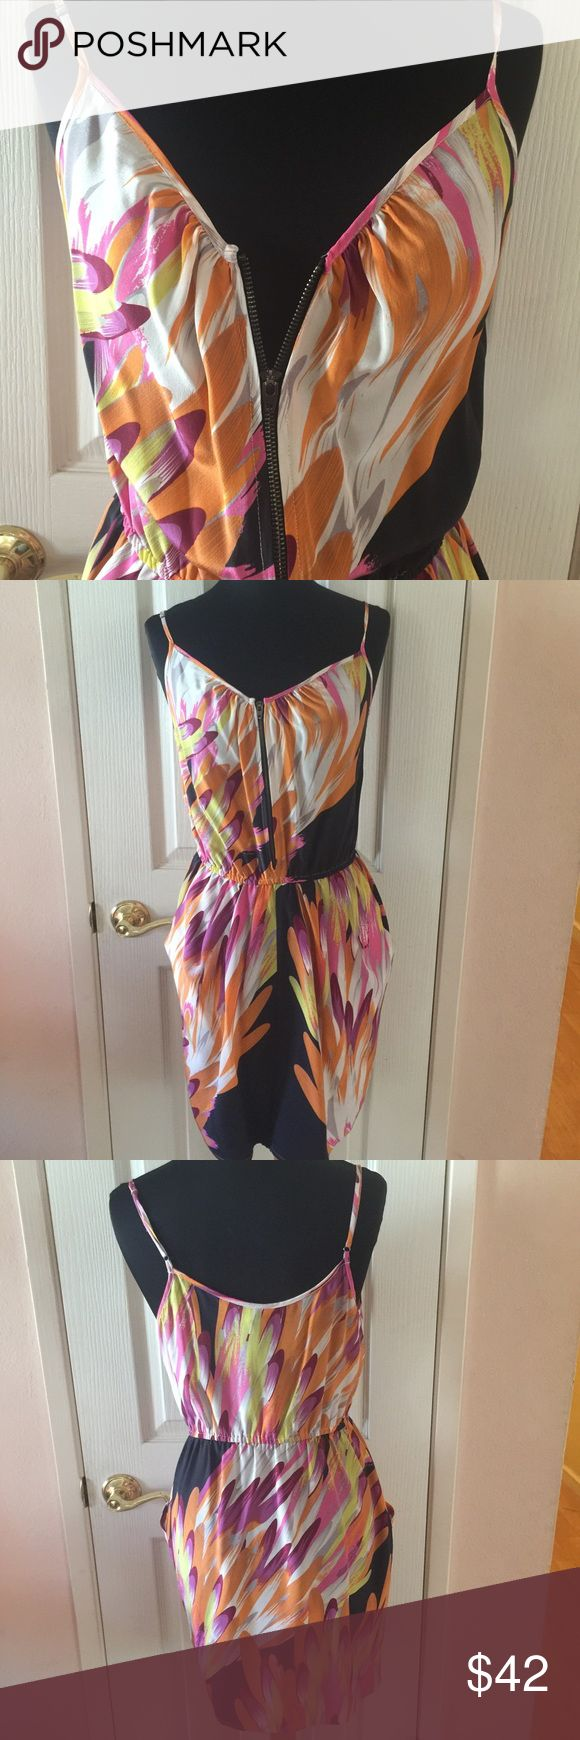 Charlie Jade Gorgeous Silk Sundress,Size S Charlie Jade Silk Dress Multi Color Pattern with Pockets,Straps are Adjustable Charlie Jade Dresses Mini